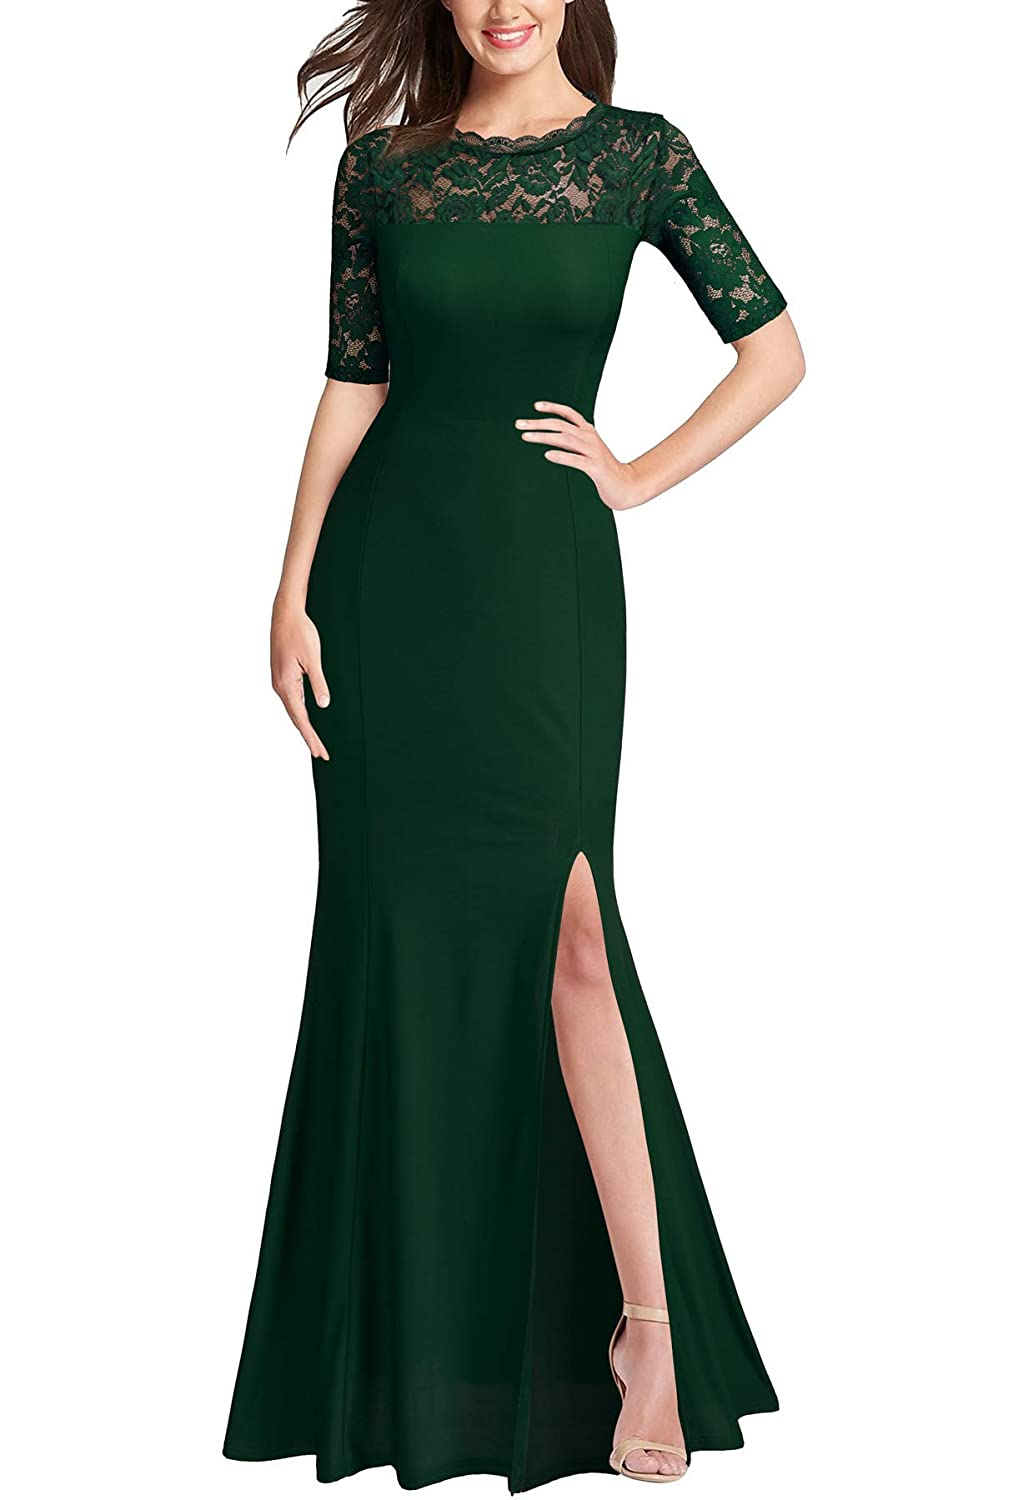 Green FORTRIC Women 3 4 Lace Sleeve Long Evening Formal Cocktail Party Dress Black